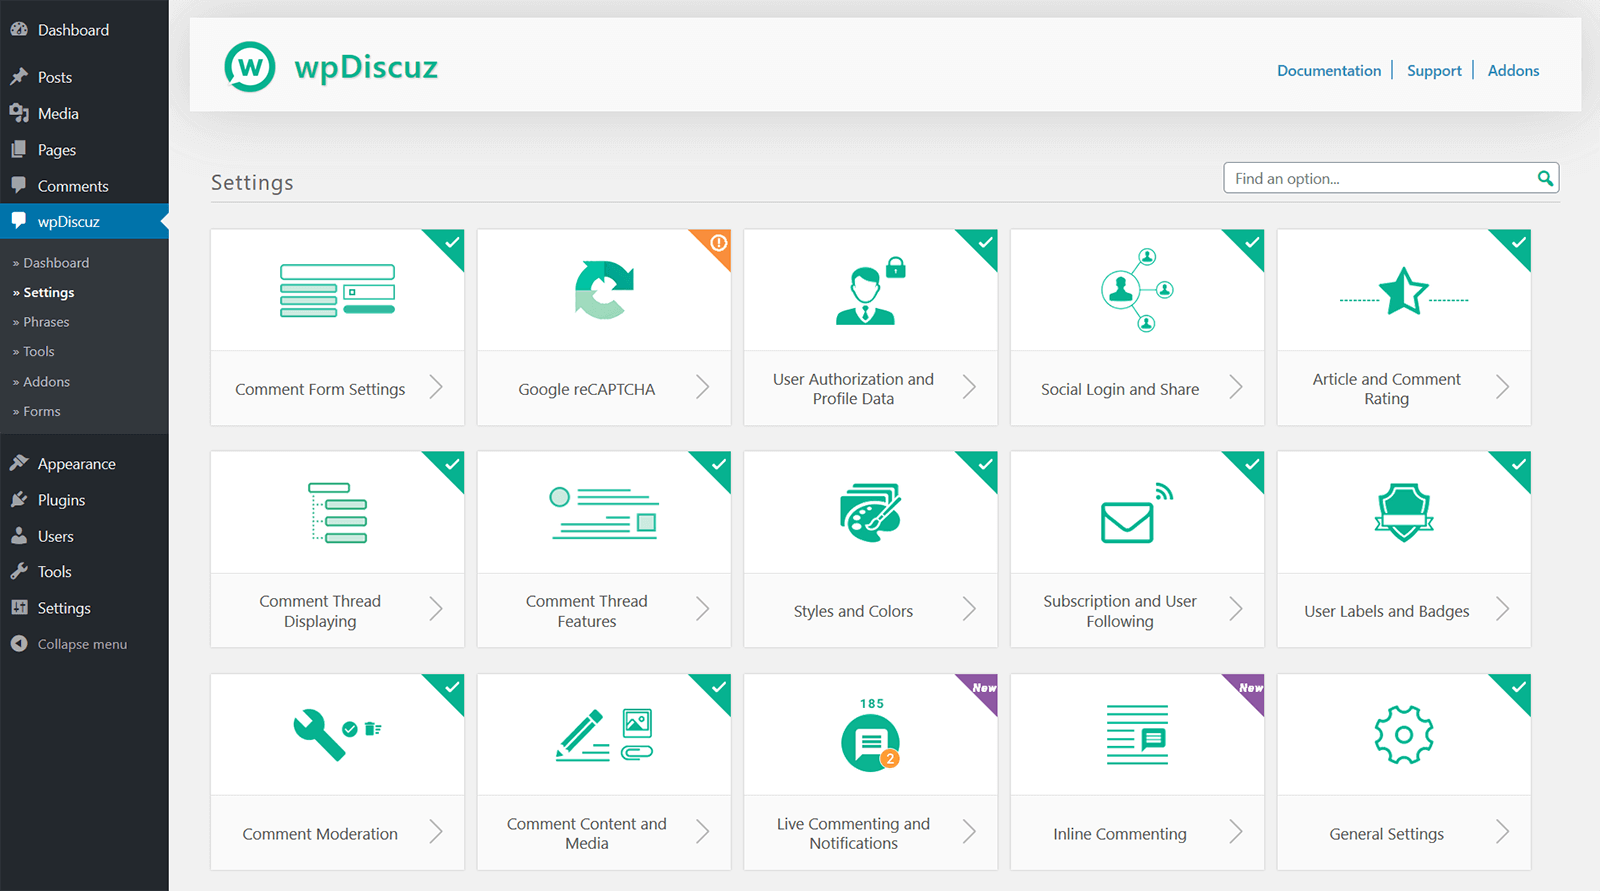 wpDiscuz Settings | Screenshot #11